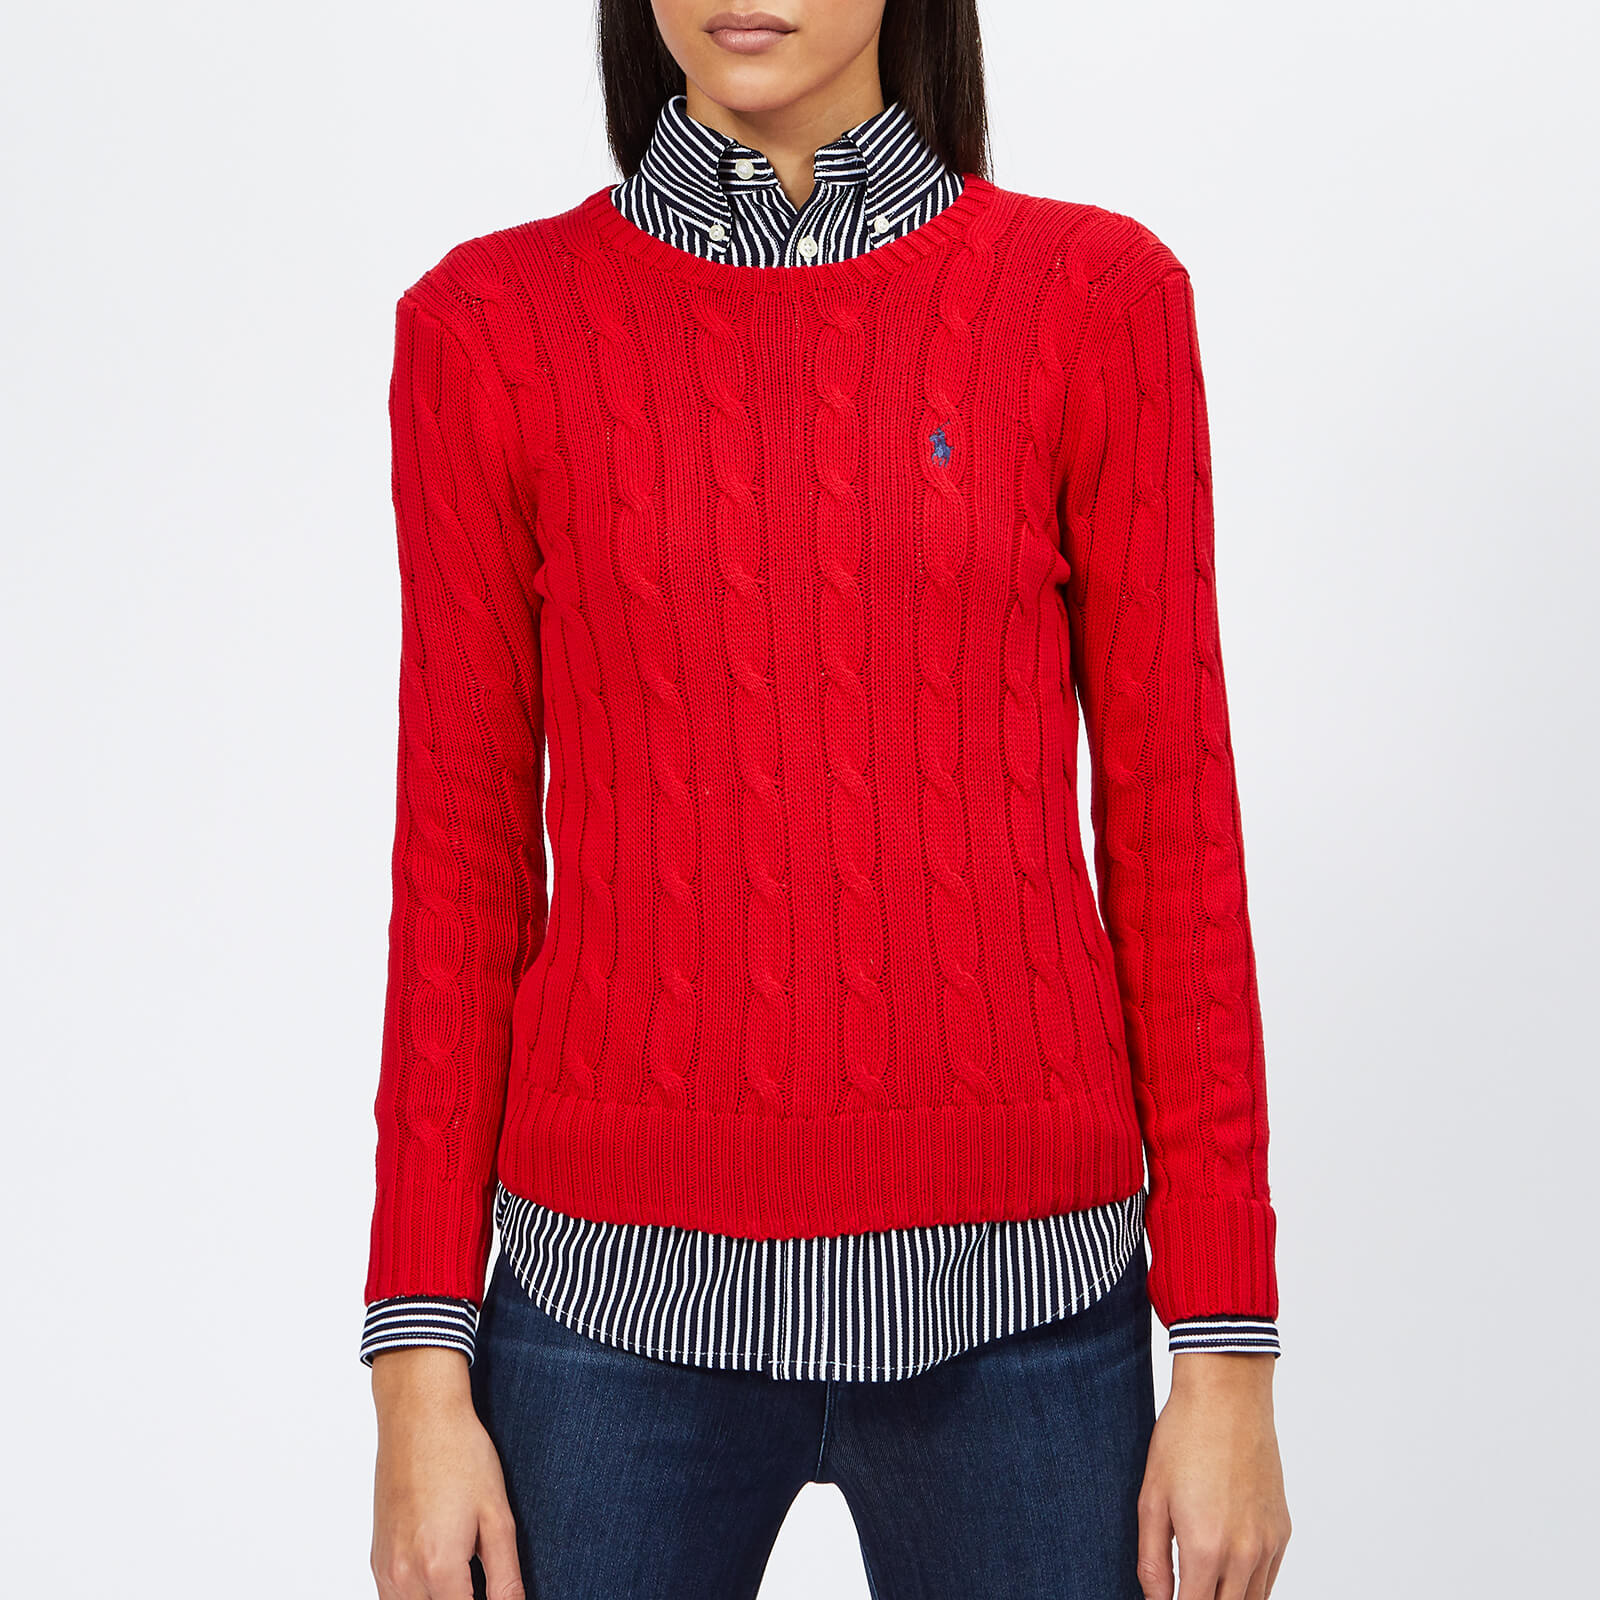 2ee5f9d4d270 Polo Ralph Lauren Women s Julianna Jumper - Red - Free UK Delivery over £50